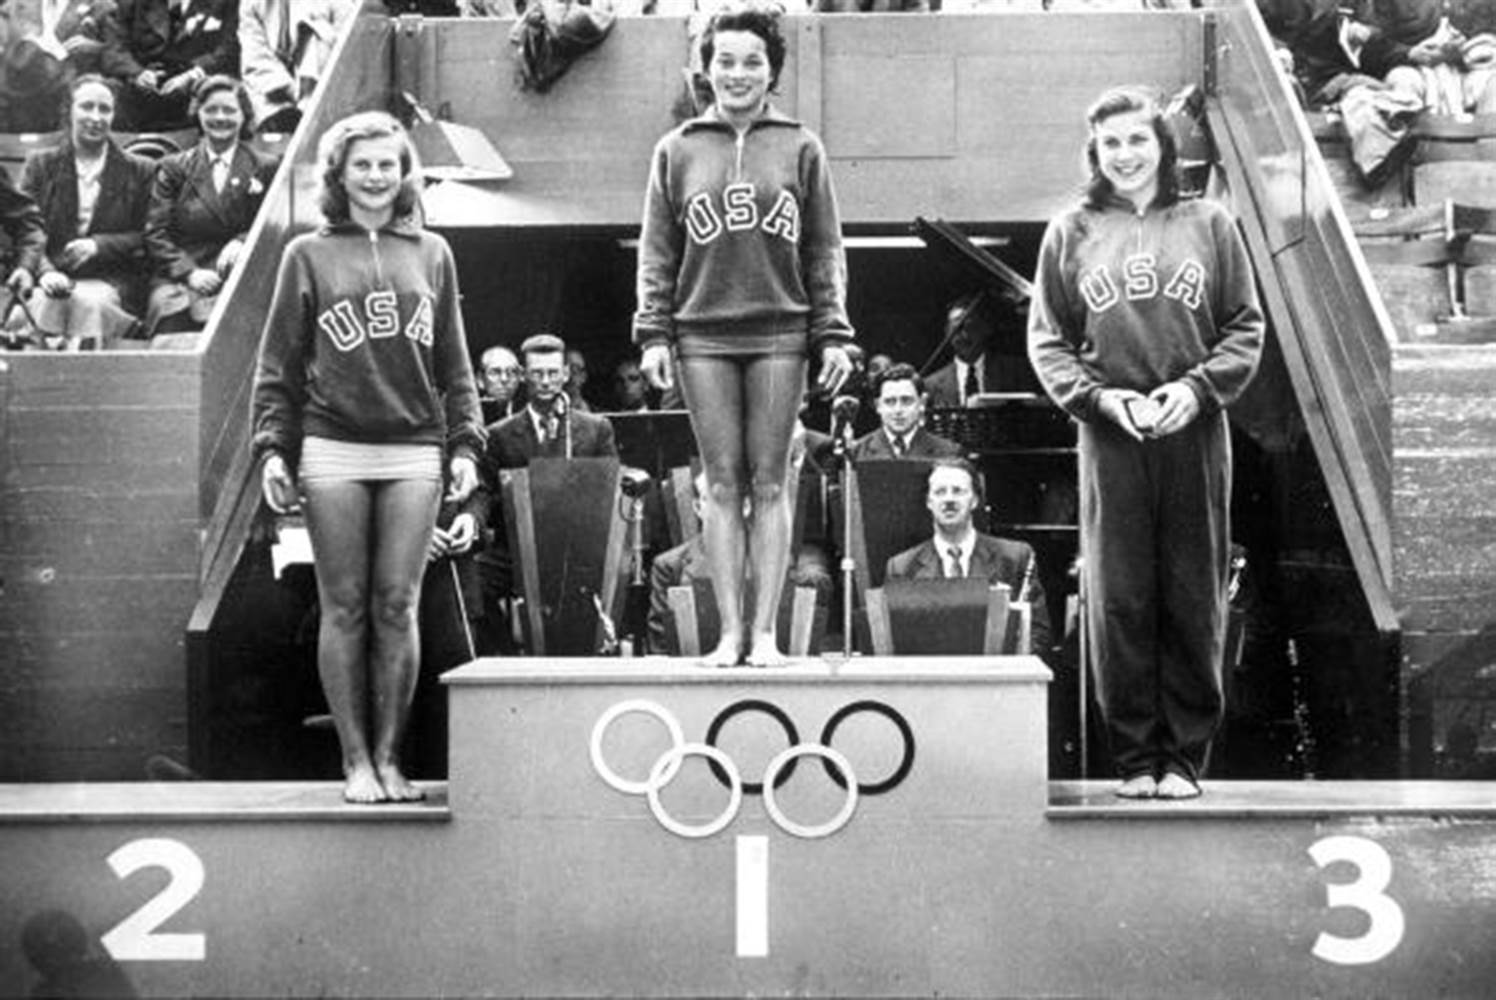 1948 Olympic Games, London, England, Springboard Diving, L-R: Zoe Ann Olsen (silver), Vicki Manalo Draves (gold) and Patsy Elsener (bronze) (Photo by Popperfoto/Getty Images)